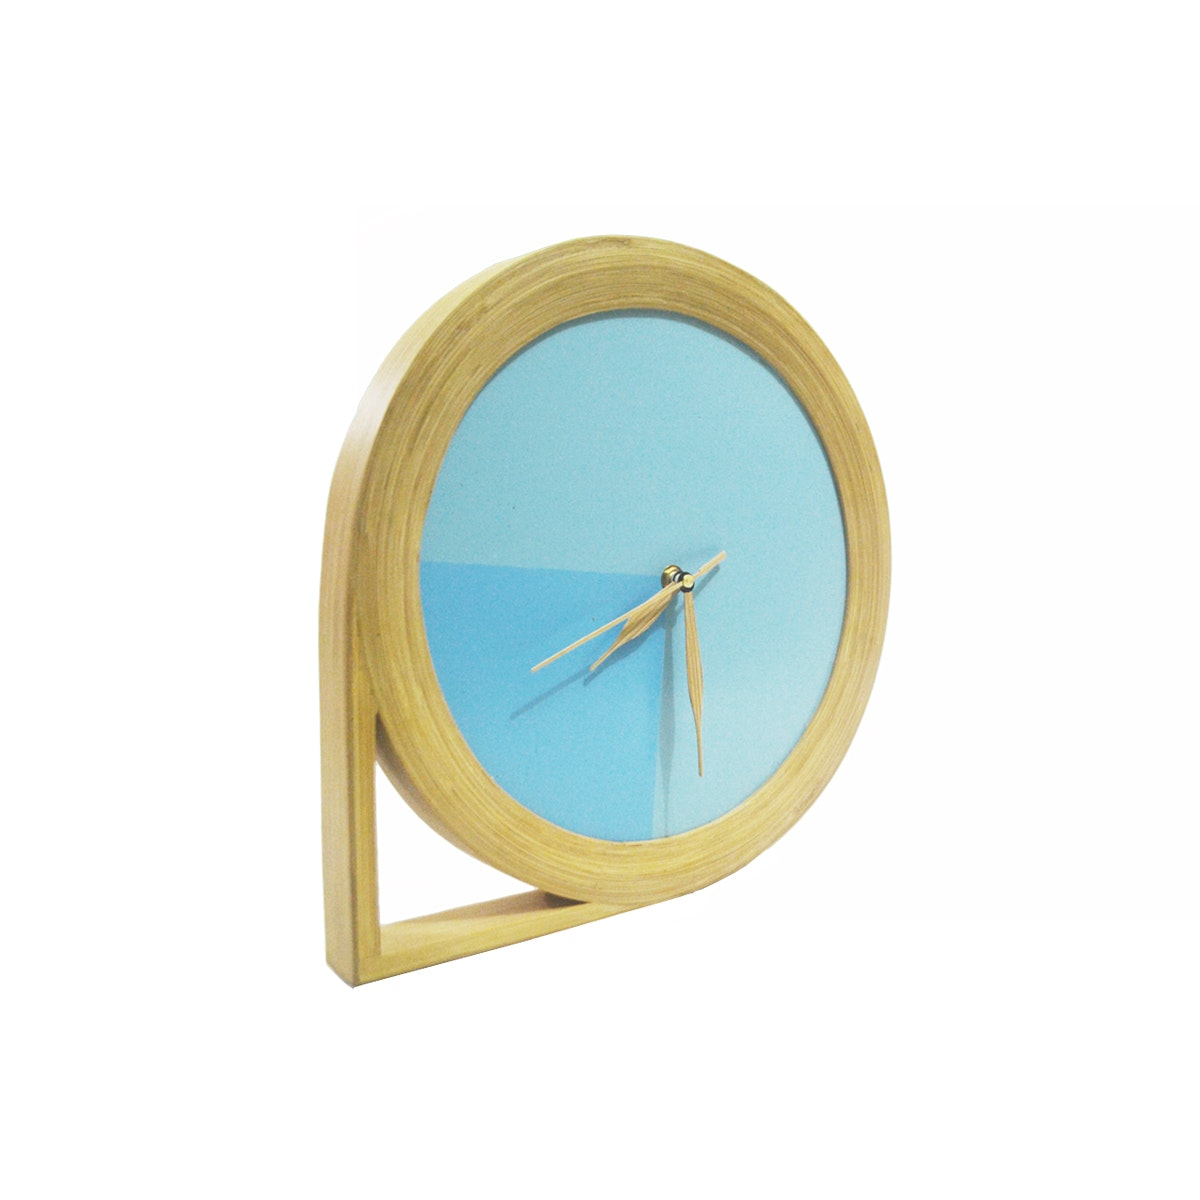 Amygdala Drop Wall Clock